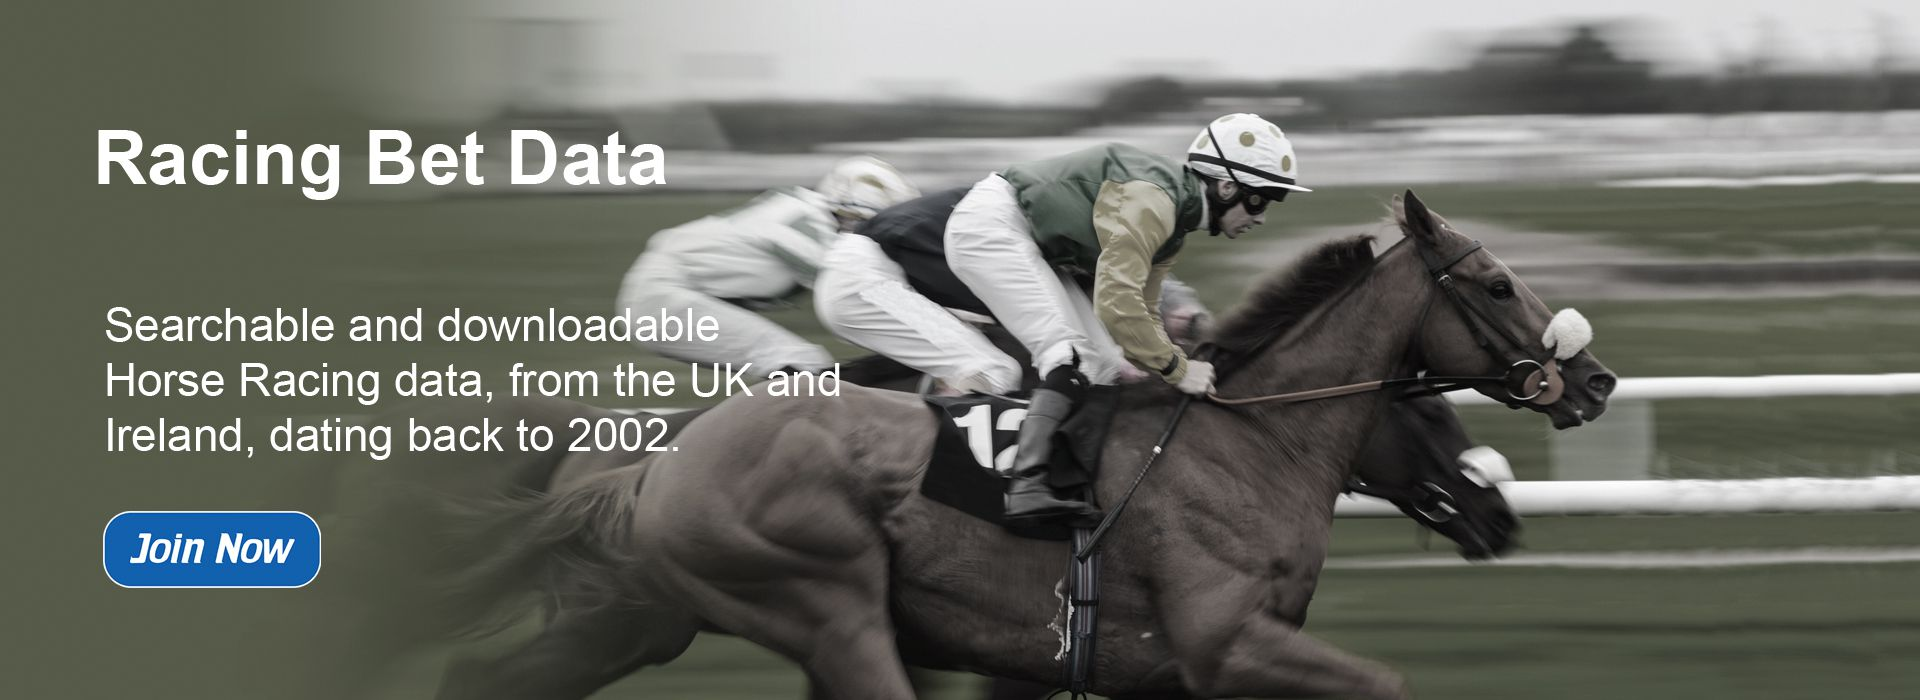 Horse Racing Bet Data - Slide One